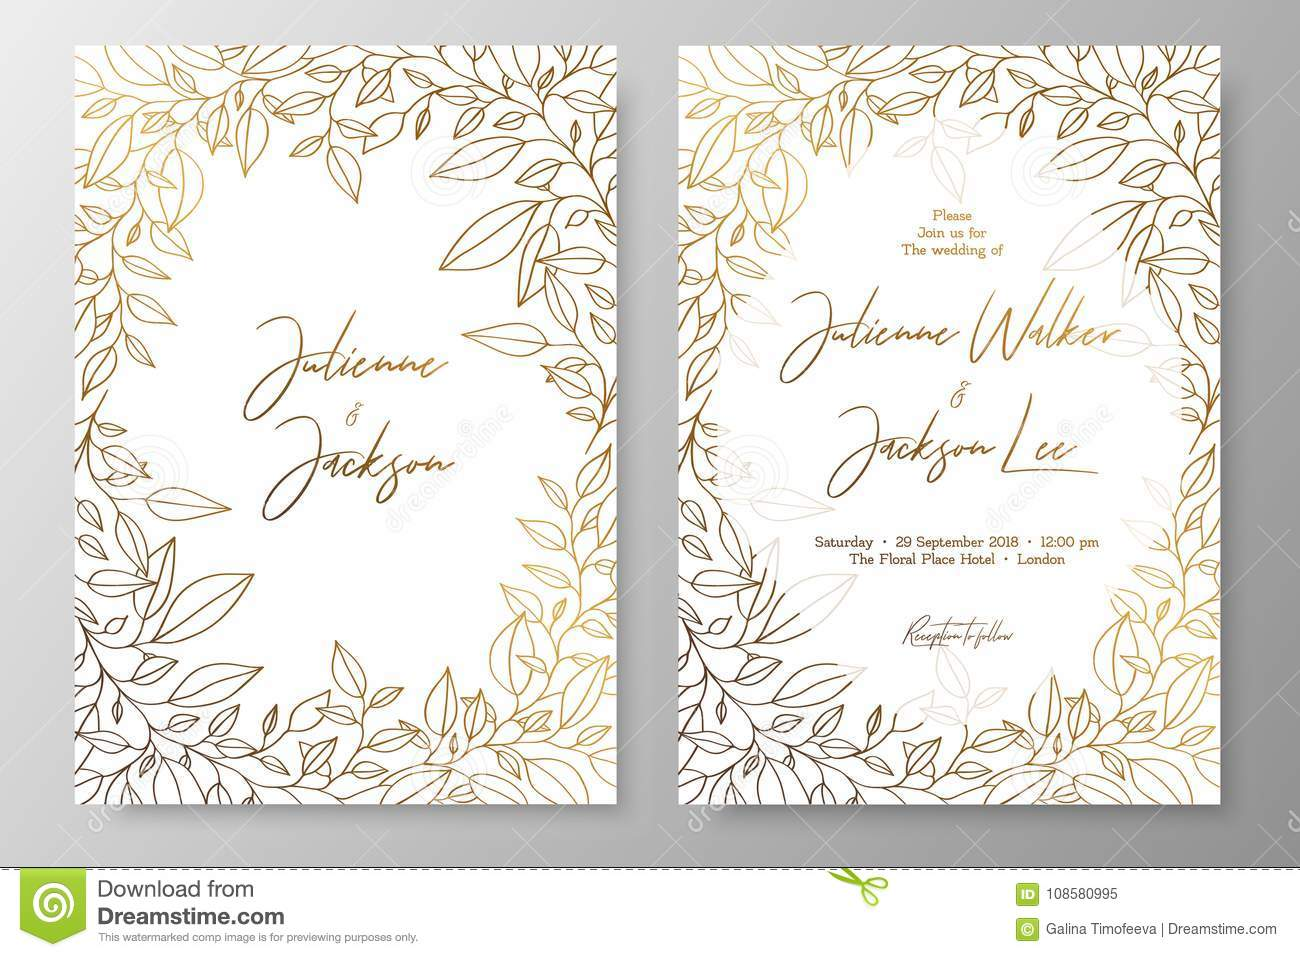 Gold Invitation With Frame Of Leaves Gold Cards Templates For Save